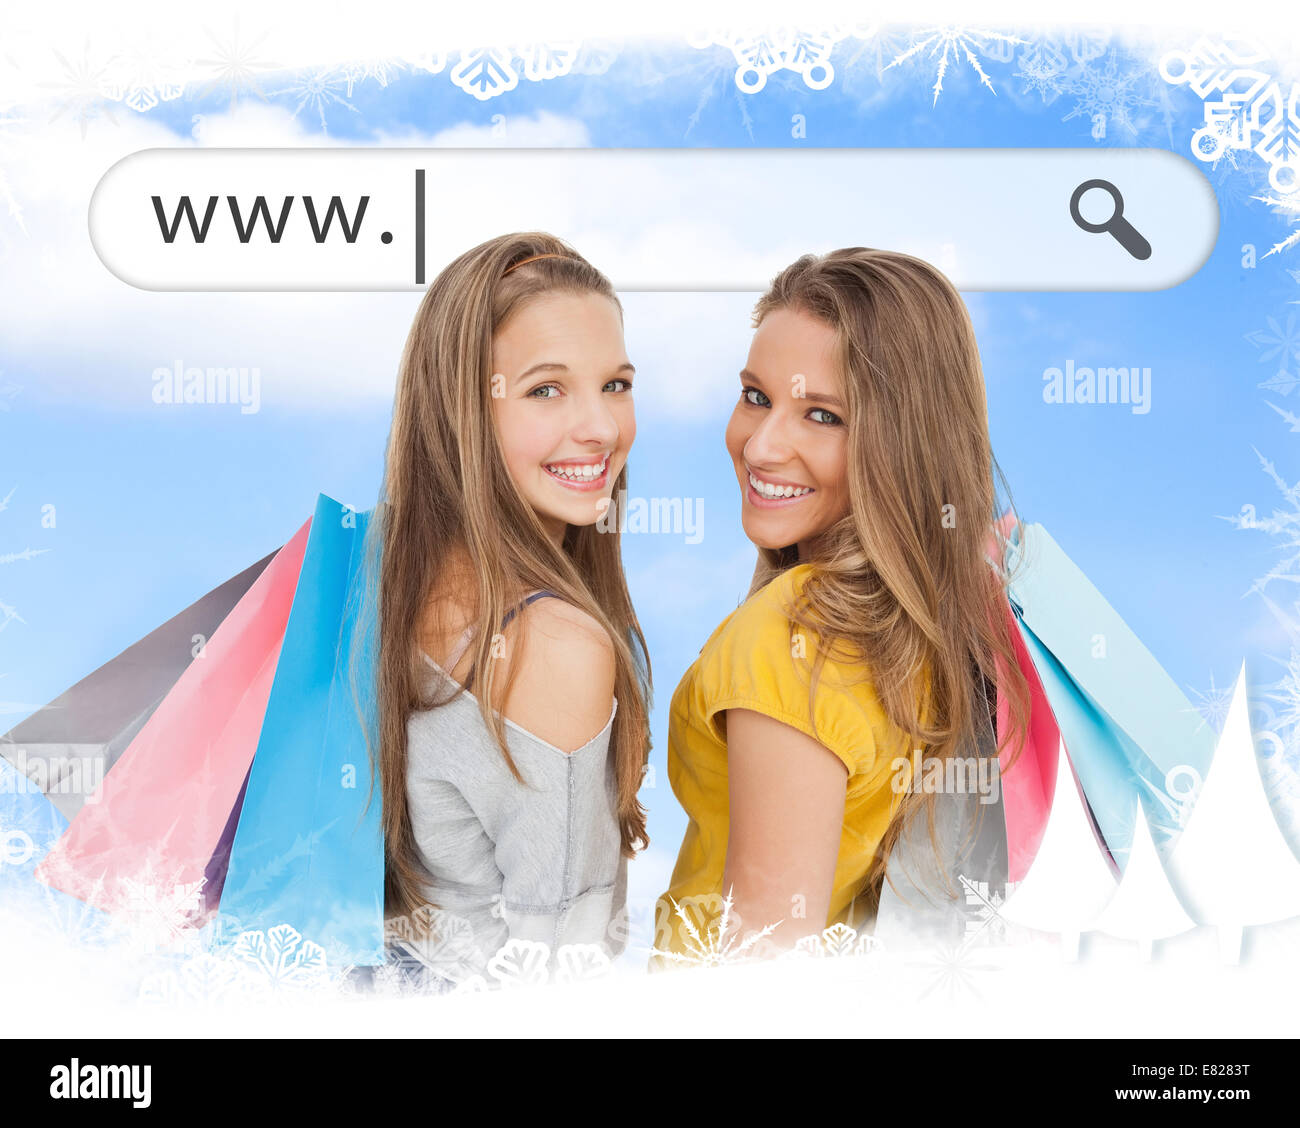 Smiling girls with their shopping bags under address bar - Stock Image